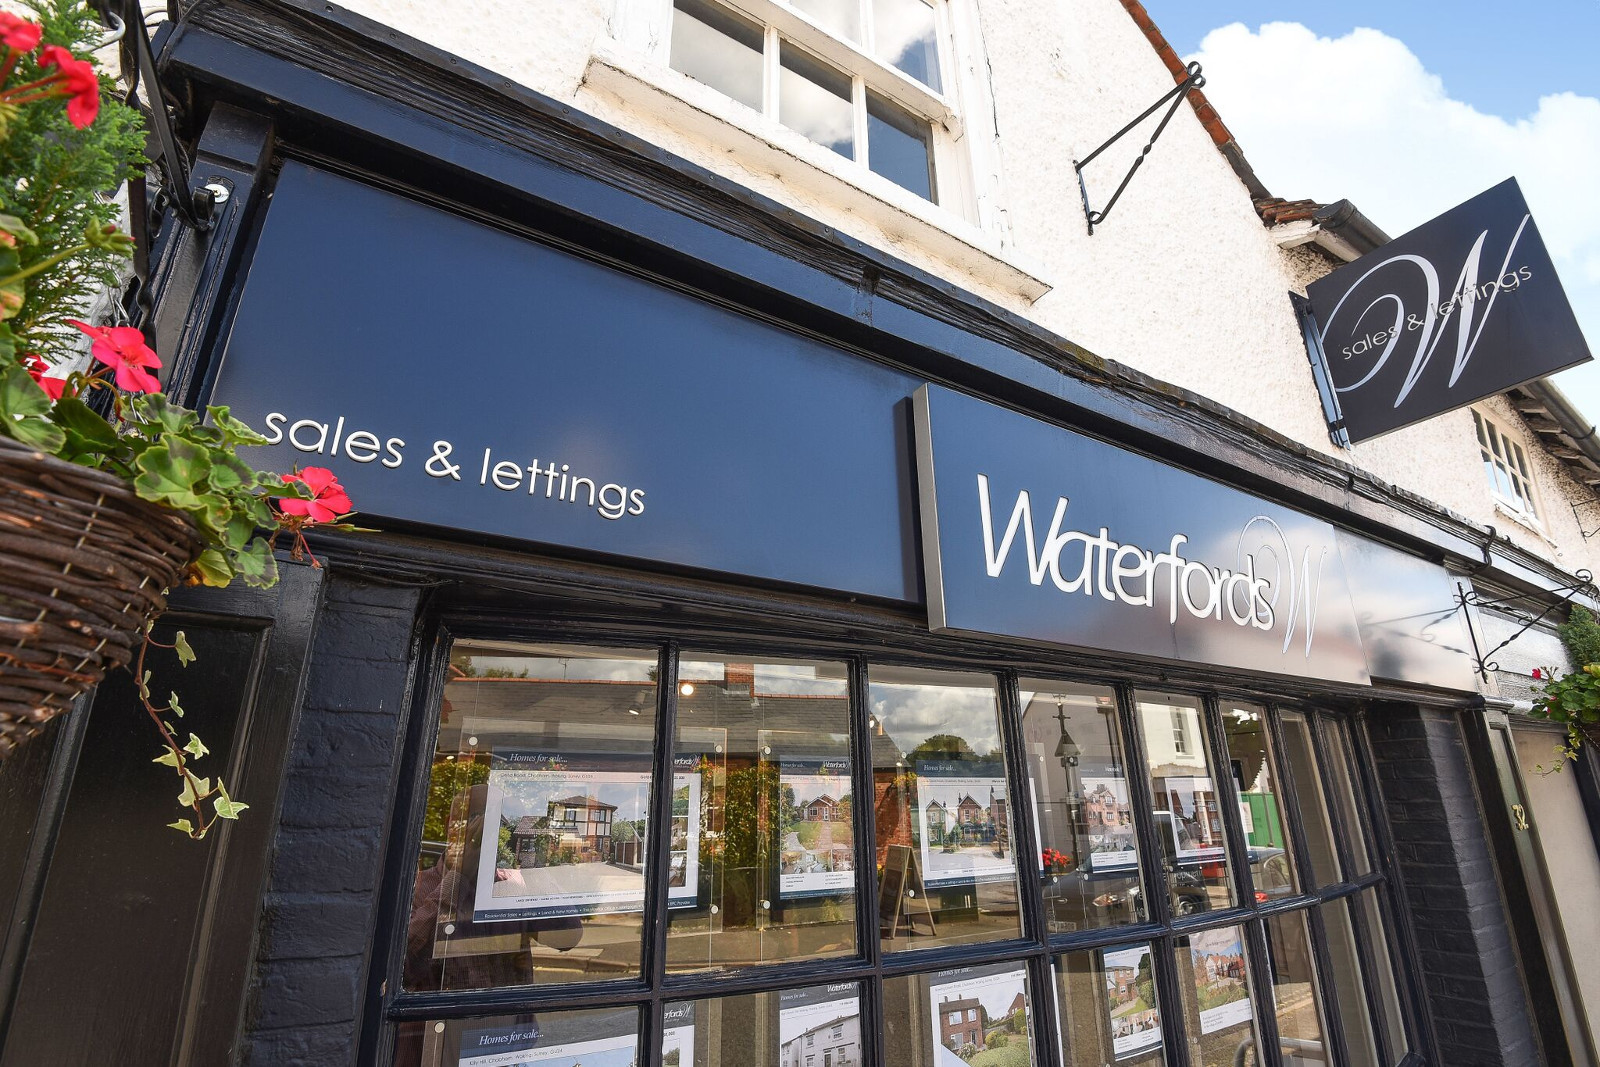 Waterfords | Chobham Lettings  | Branch image 2